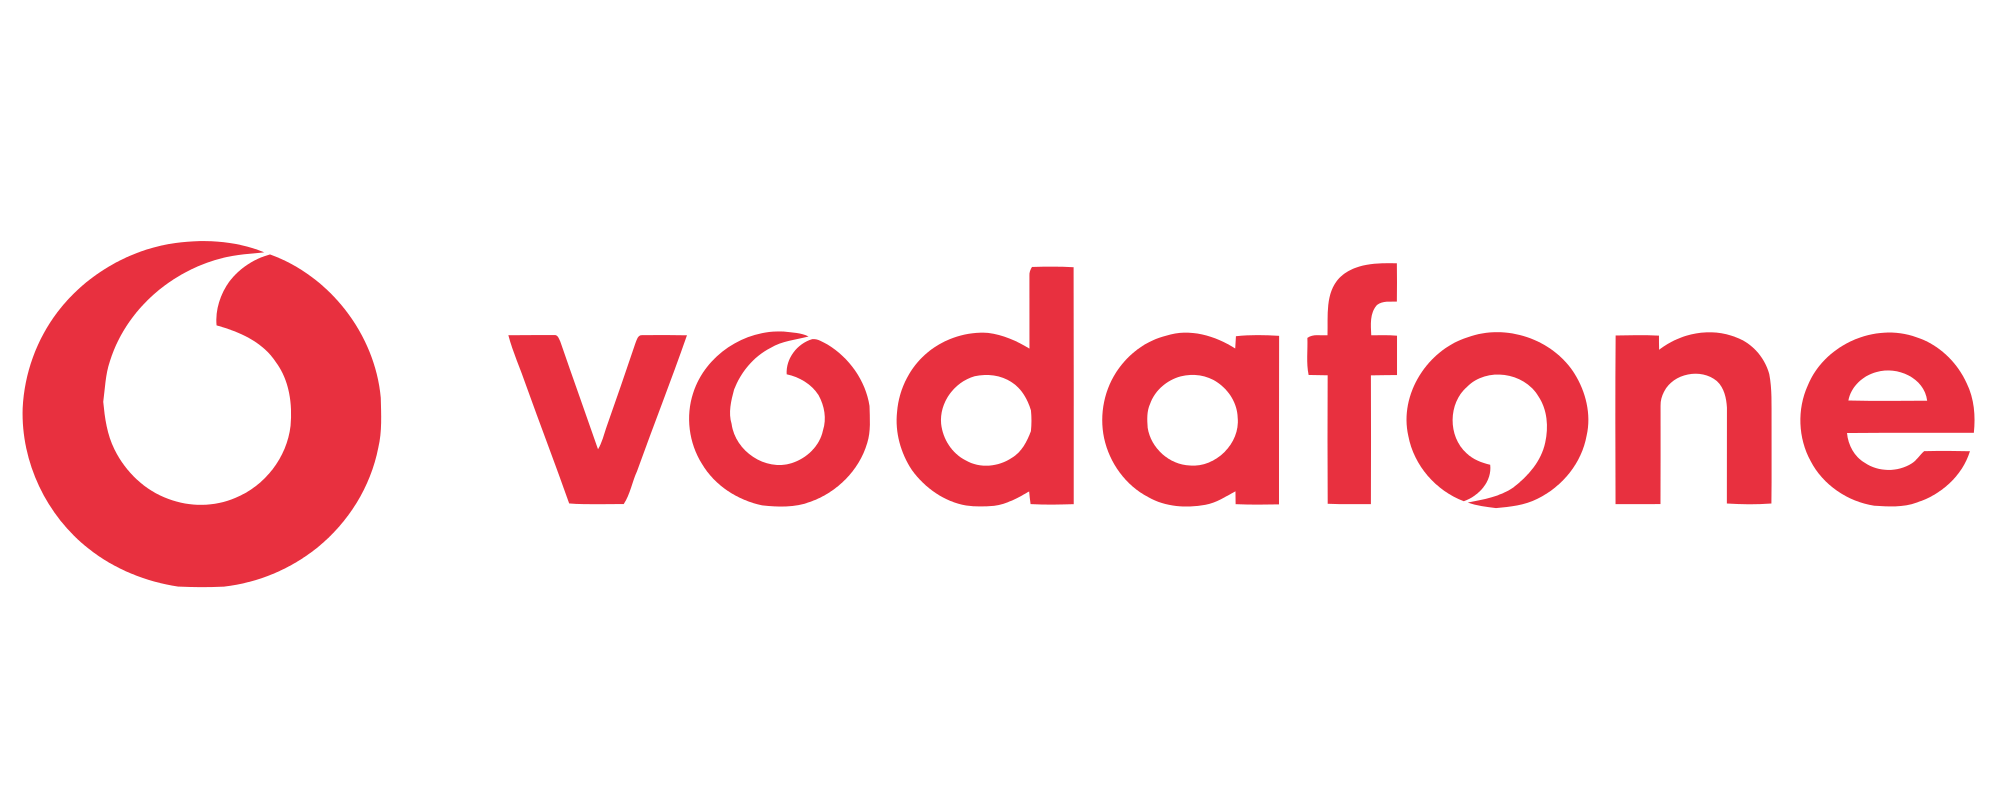 THE NEW VODAFONE LOGO 2020 PNG